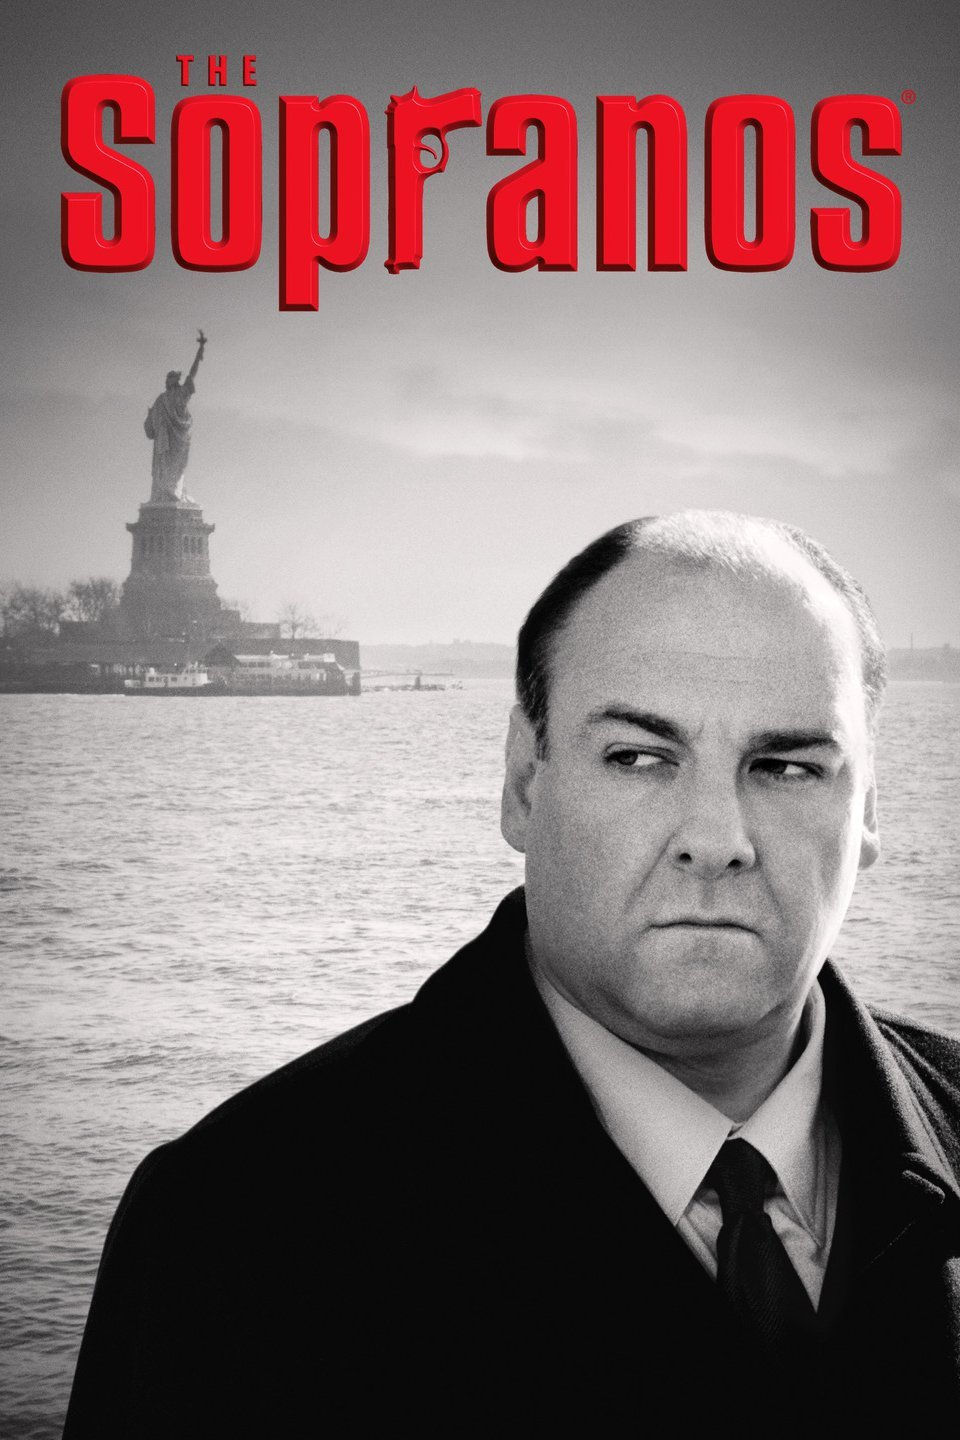 In the 2000s, when the mob melodrama ''The Sopranos''sang its seasonal swan song – inducing withdrawal agita among millions of the show's hopelessly addicted viewers – more than a few sighs of relief will be heard. Specifically, from restaurateurs and movie-house owners who have taken, um, a hit on Sunday nights during the 13-week HBO series.  ''I'll be glad when it's over,''said William Lee, the Sunday manager of Bill Hong, the Cantonese restaurant on East 56th Street in Manhattan. ''People seem to want to get out of here by 9, to see the show. Actually, our seating is pretty much done by 8.''  Wounded as he is overall by the Soprano Effect, Mr. Lee has nevertheless picked up a few diners for the show. He is host to what may be the most famous weekly Sopranos party in Manhattan: his restaurant was usually where Mayor Rudolph W. Giuliani (107th Mayor of New York City) gathers with several friends, including Judith Nathan, for a pre-show meal. ''Every Sunday, before 9, there is a mass evacuation from the restaurant,''  said Mr. Lee.